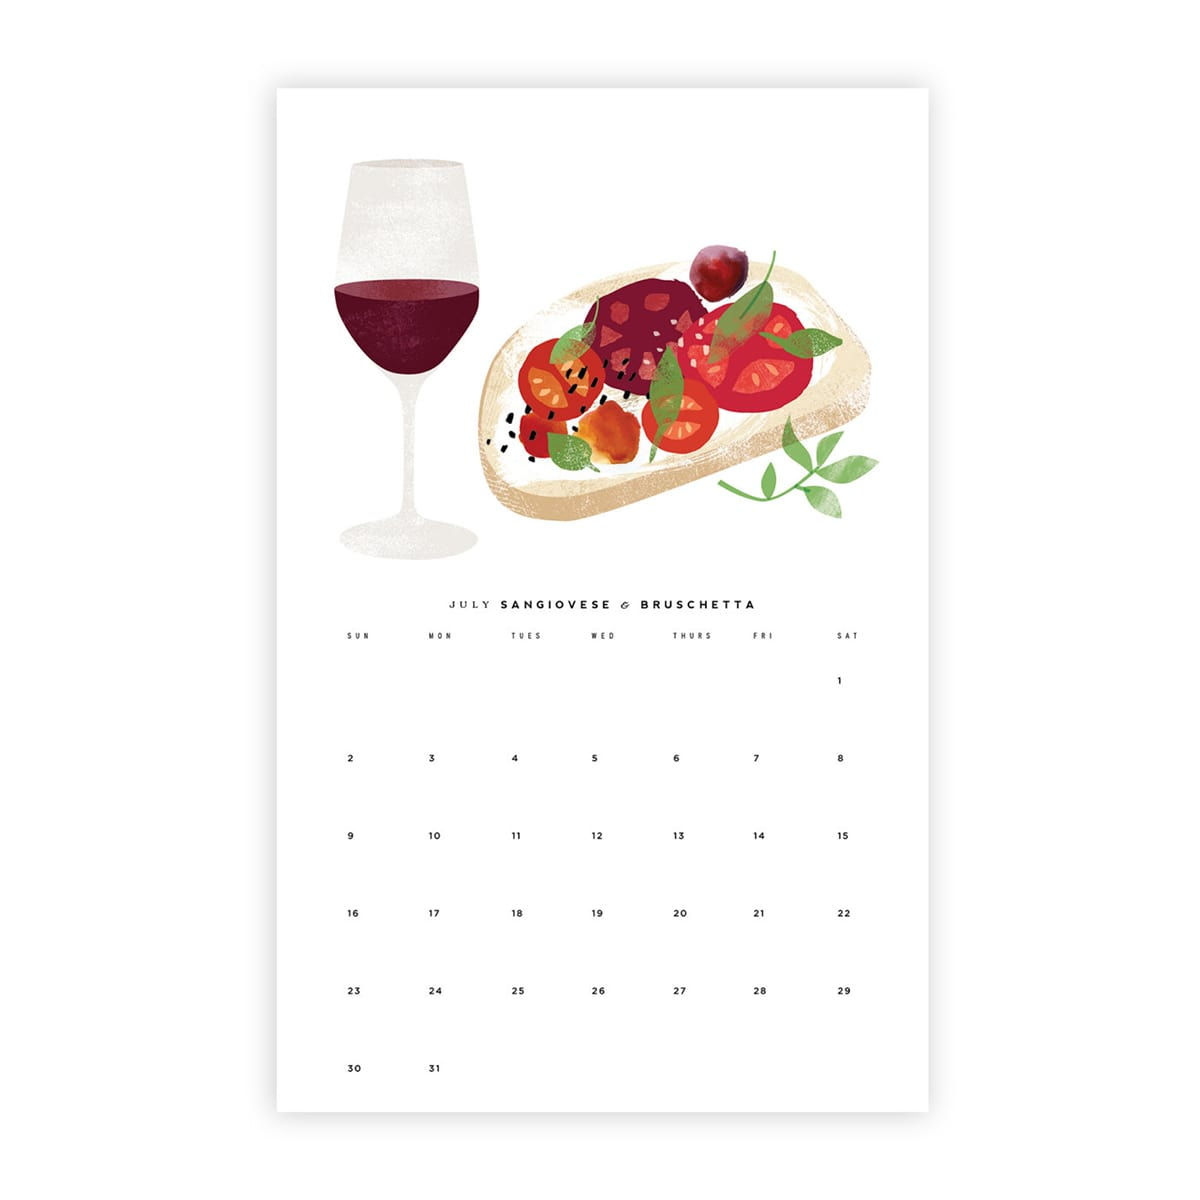 10 Food-Themed Calendars for a Yummy New Year: gallery image 6